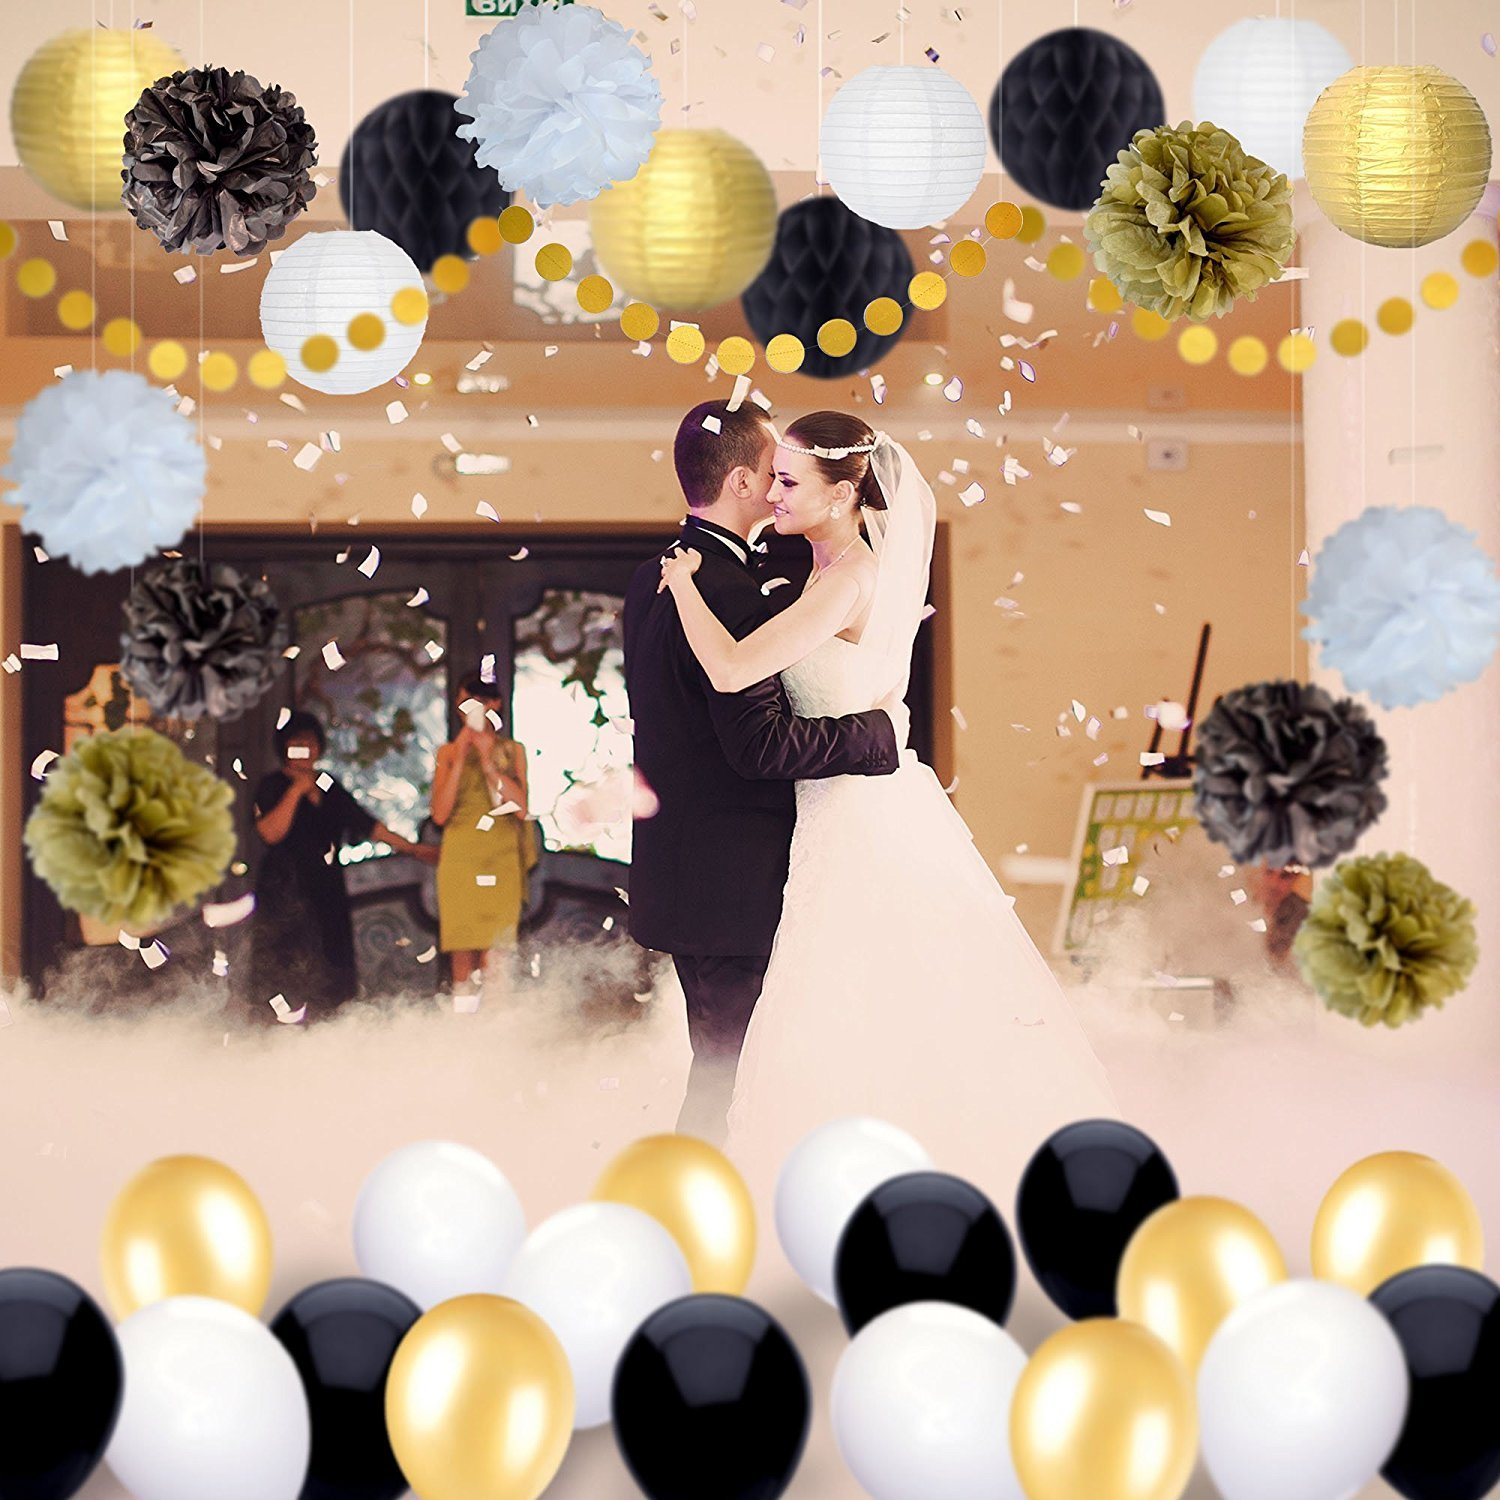 Happy New Year Party Decorations Black White Gold Tissue Paper Pom Pom Paper Lanterns for Great Decorations// New Years Eve Party //Birthday Decorations//Bridal Shower Decorations